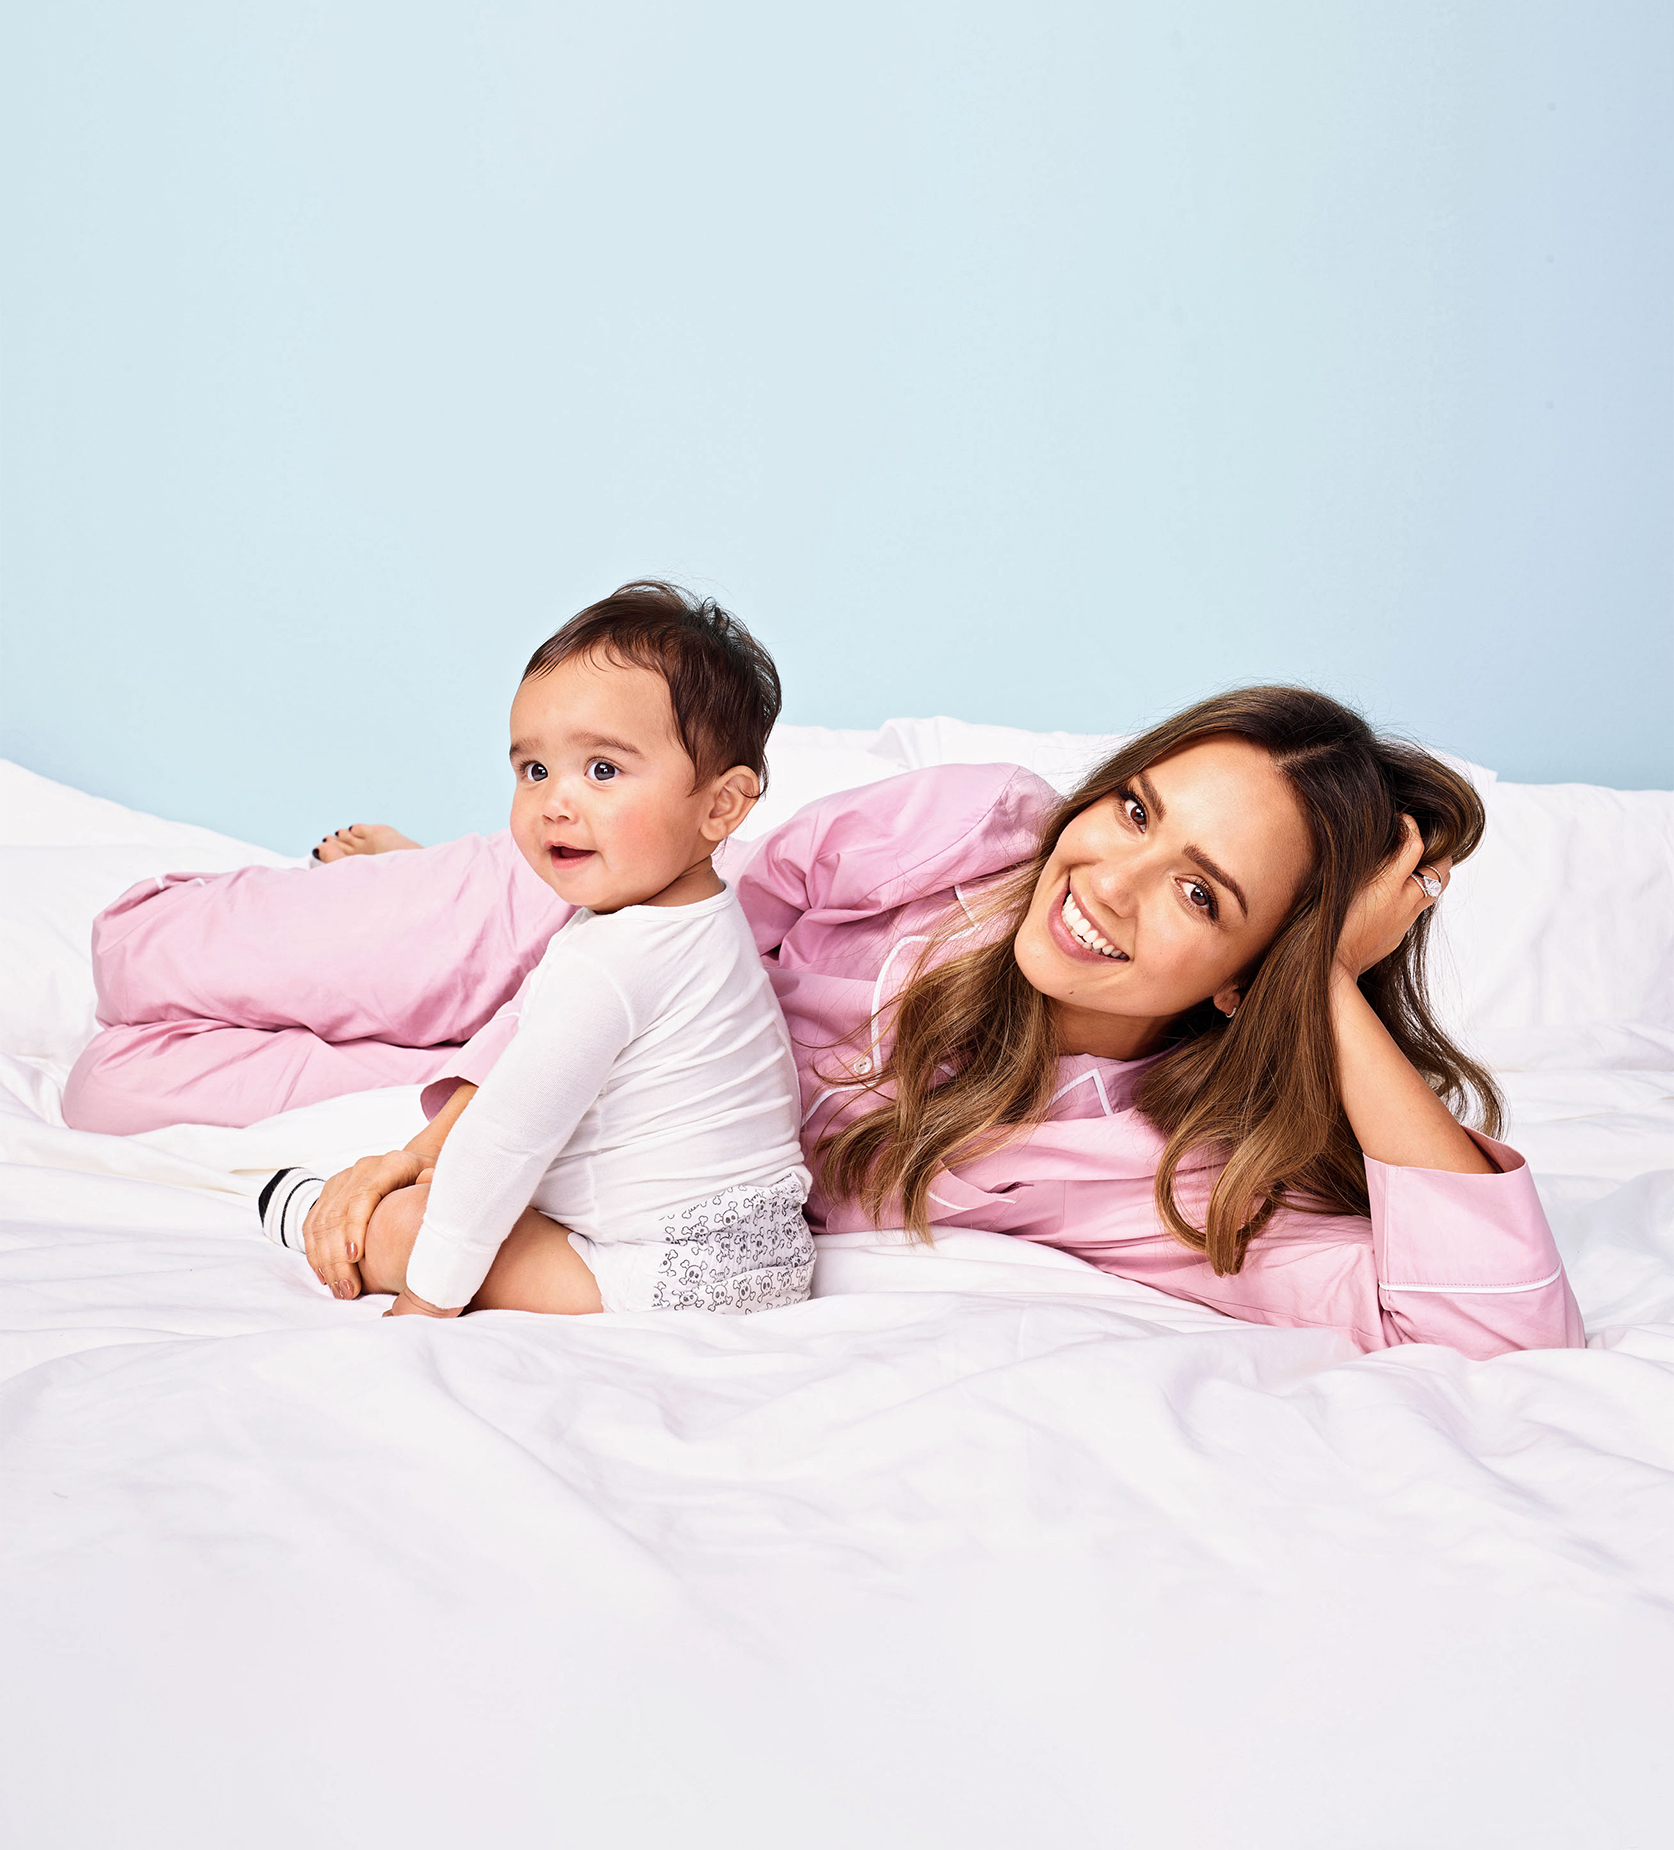 jessica alba and son in pajamas on bed